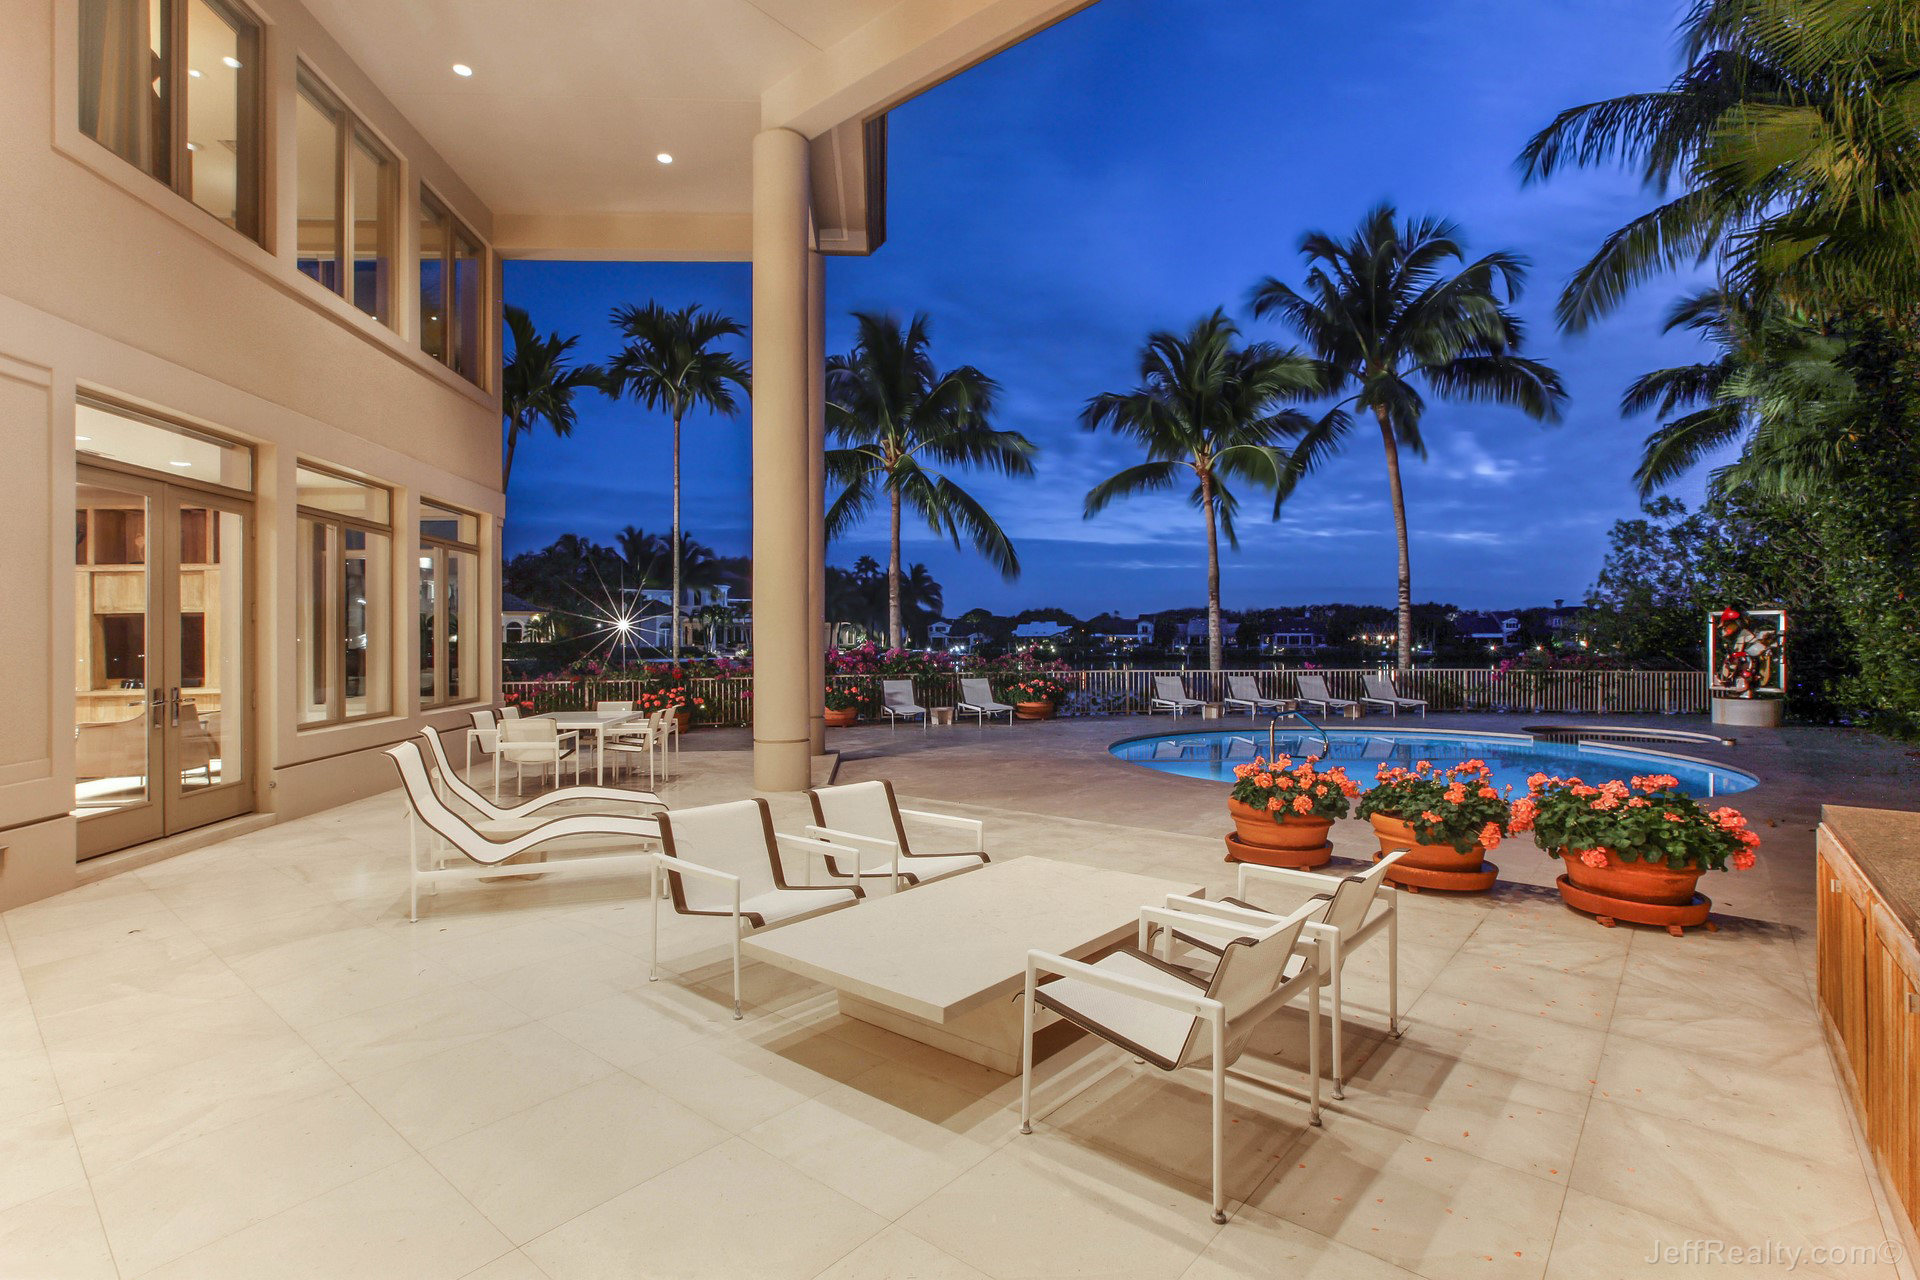 127 Commodore Drive - Patio & Pool at Sunset - Admirals Cove